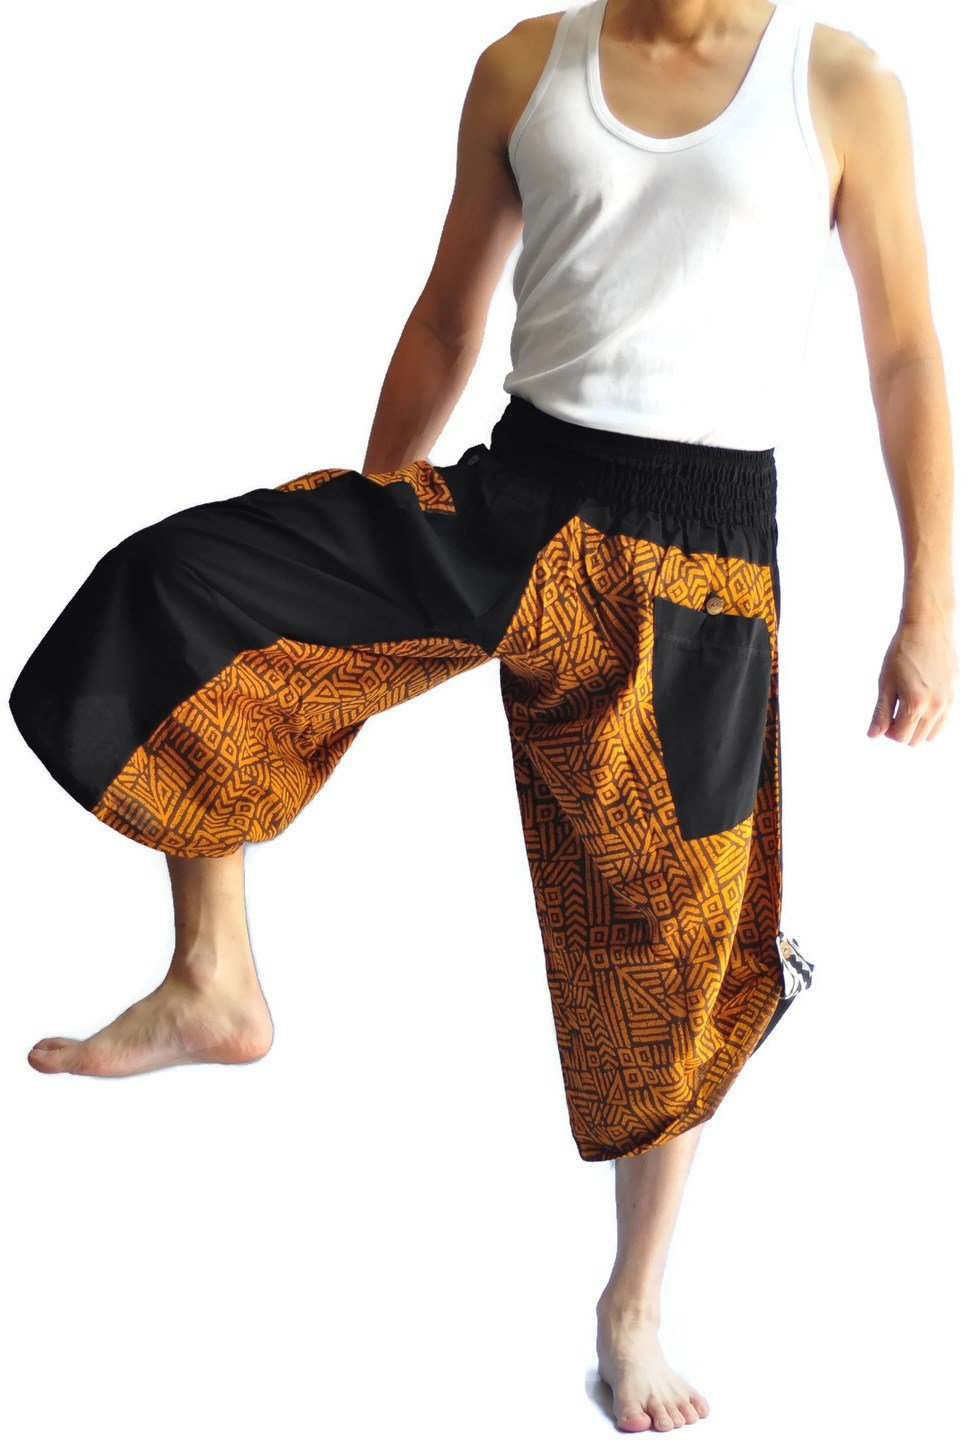 Siam Trendy Men's Japanese Style Pants One Size Black Tradition Stone (brown)